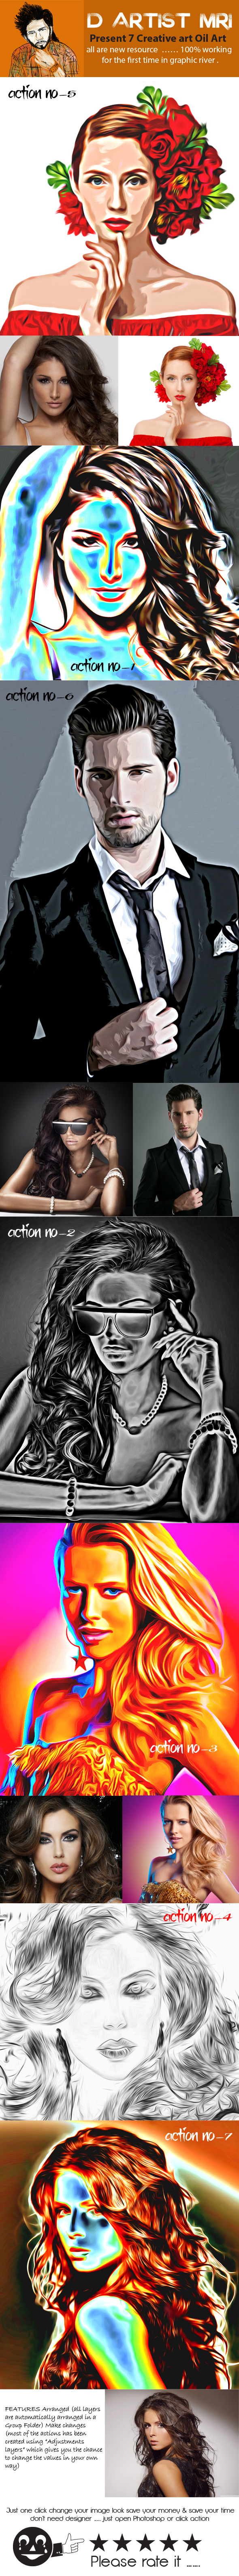 Creative Oil Art - Actions Photoshop